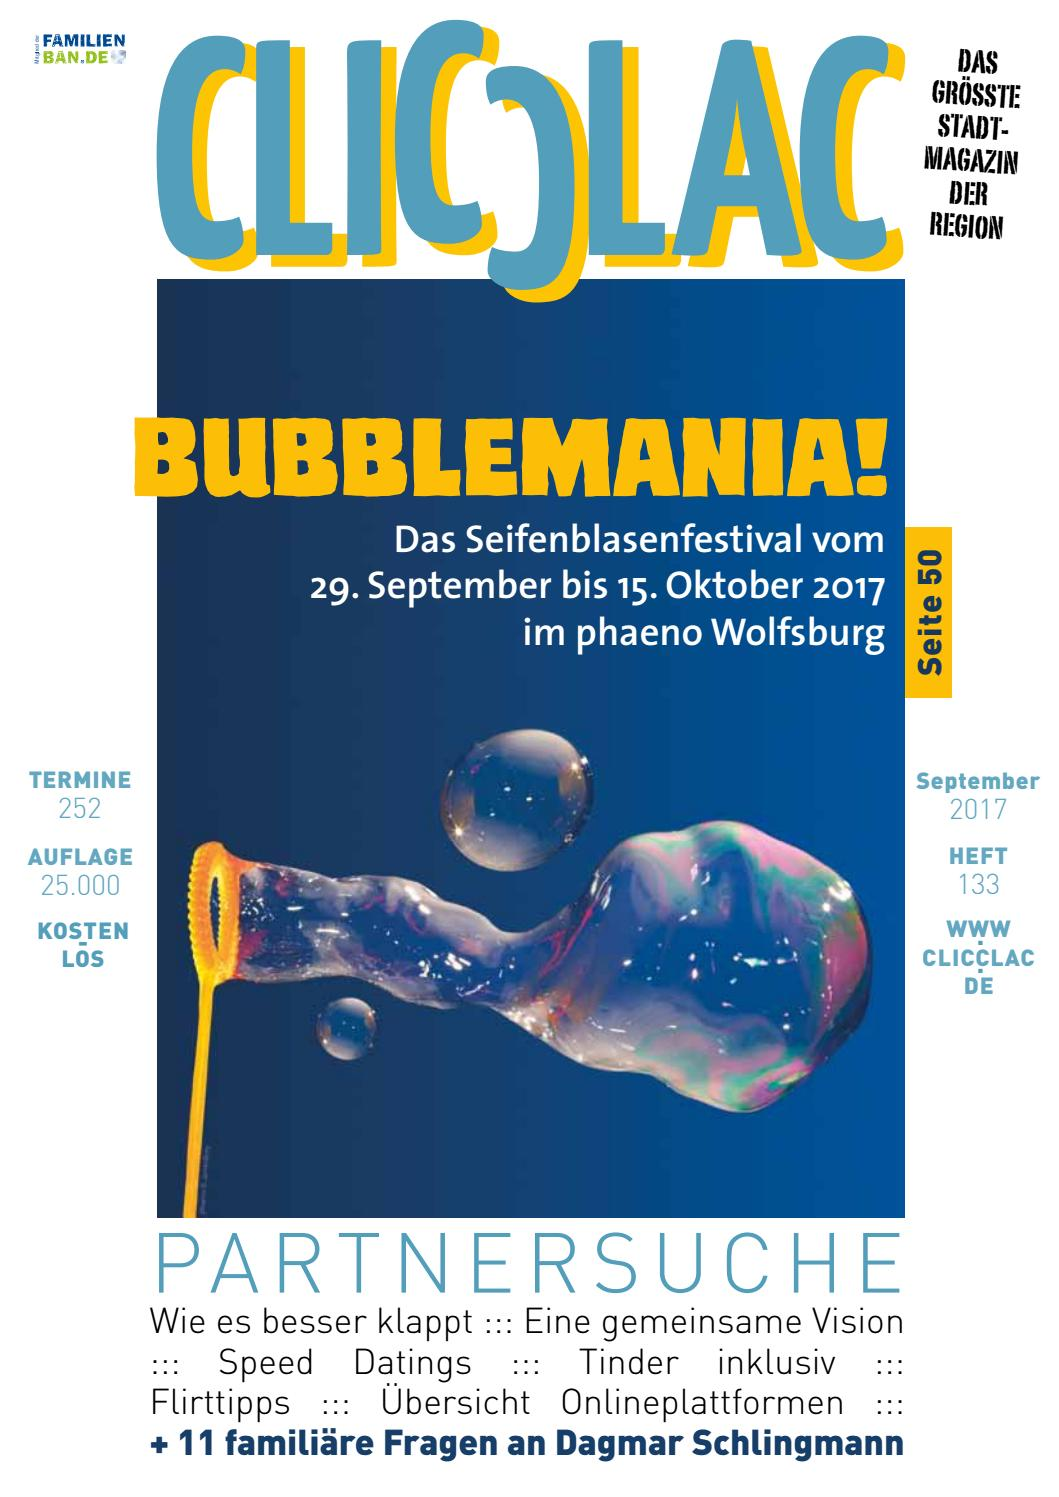 Clicclac – Sept. 2017 by Clicclac - Stadtmagazin für Familien - issuu